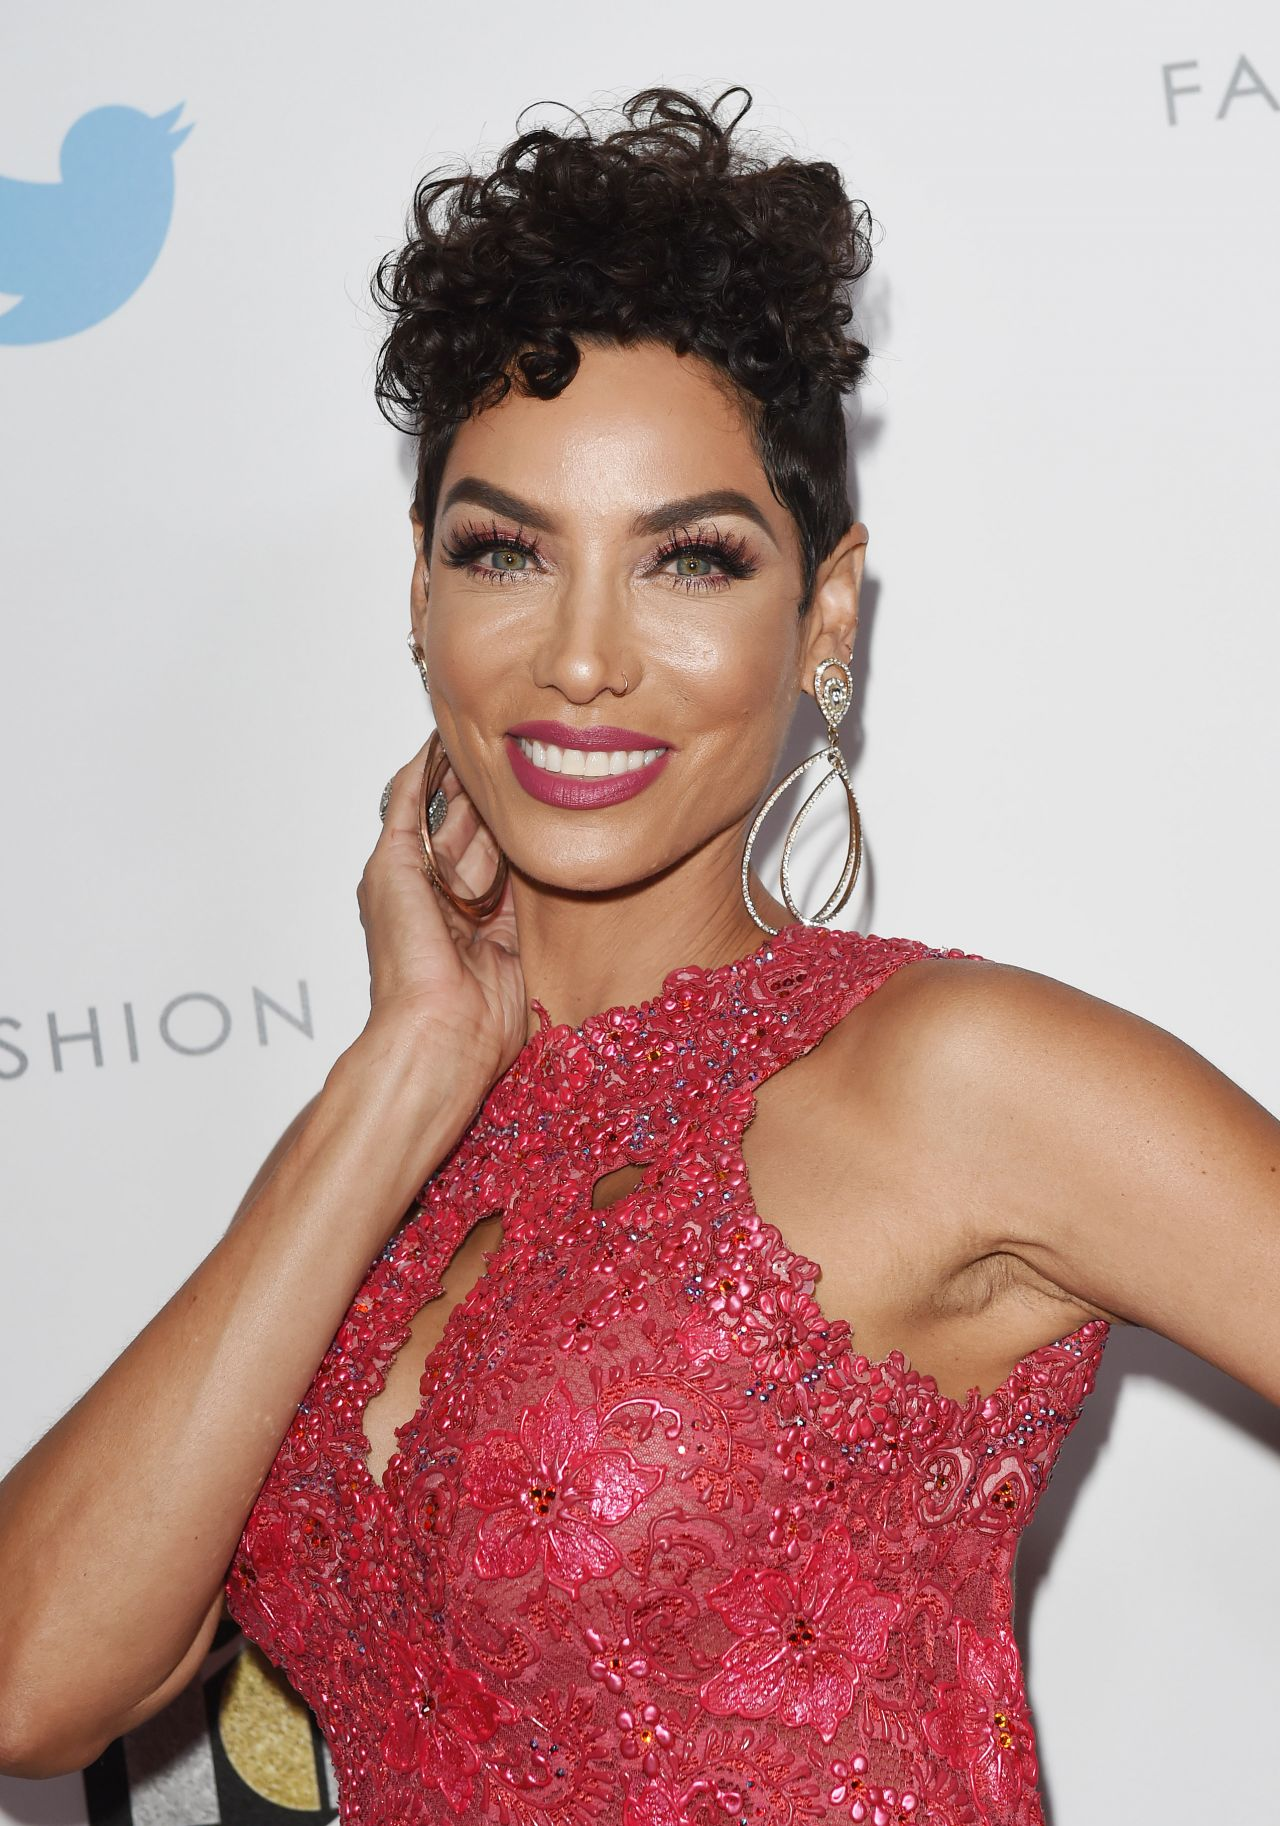 Gallery Nicole Murphy  naked (51 photos), Instagram, butt